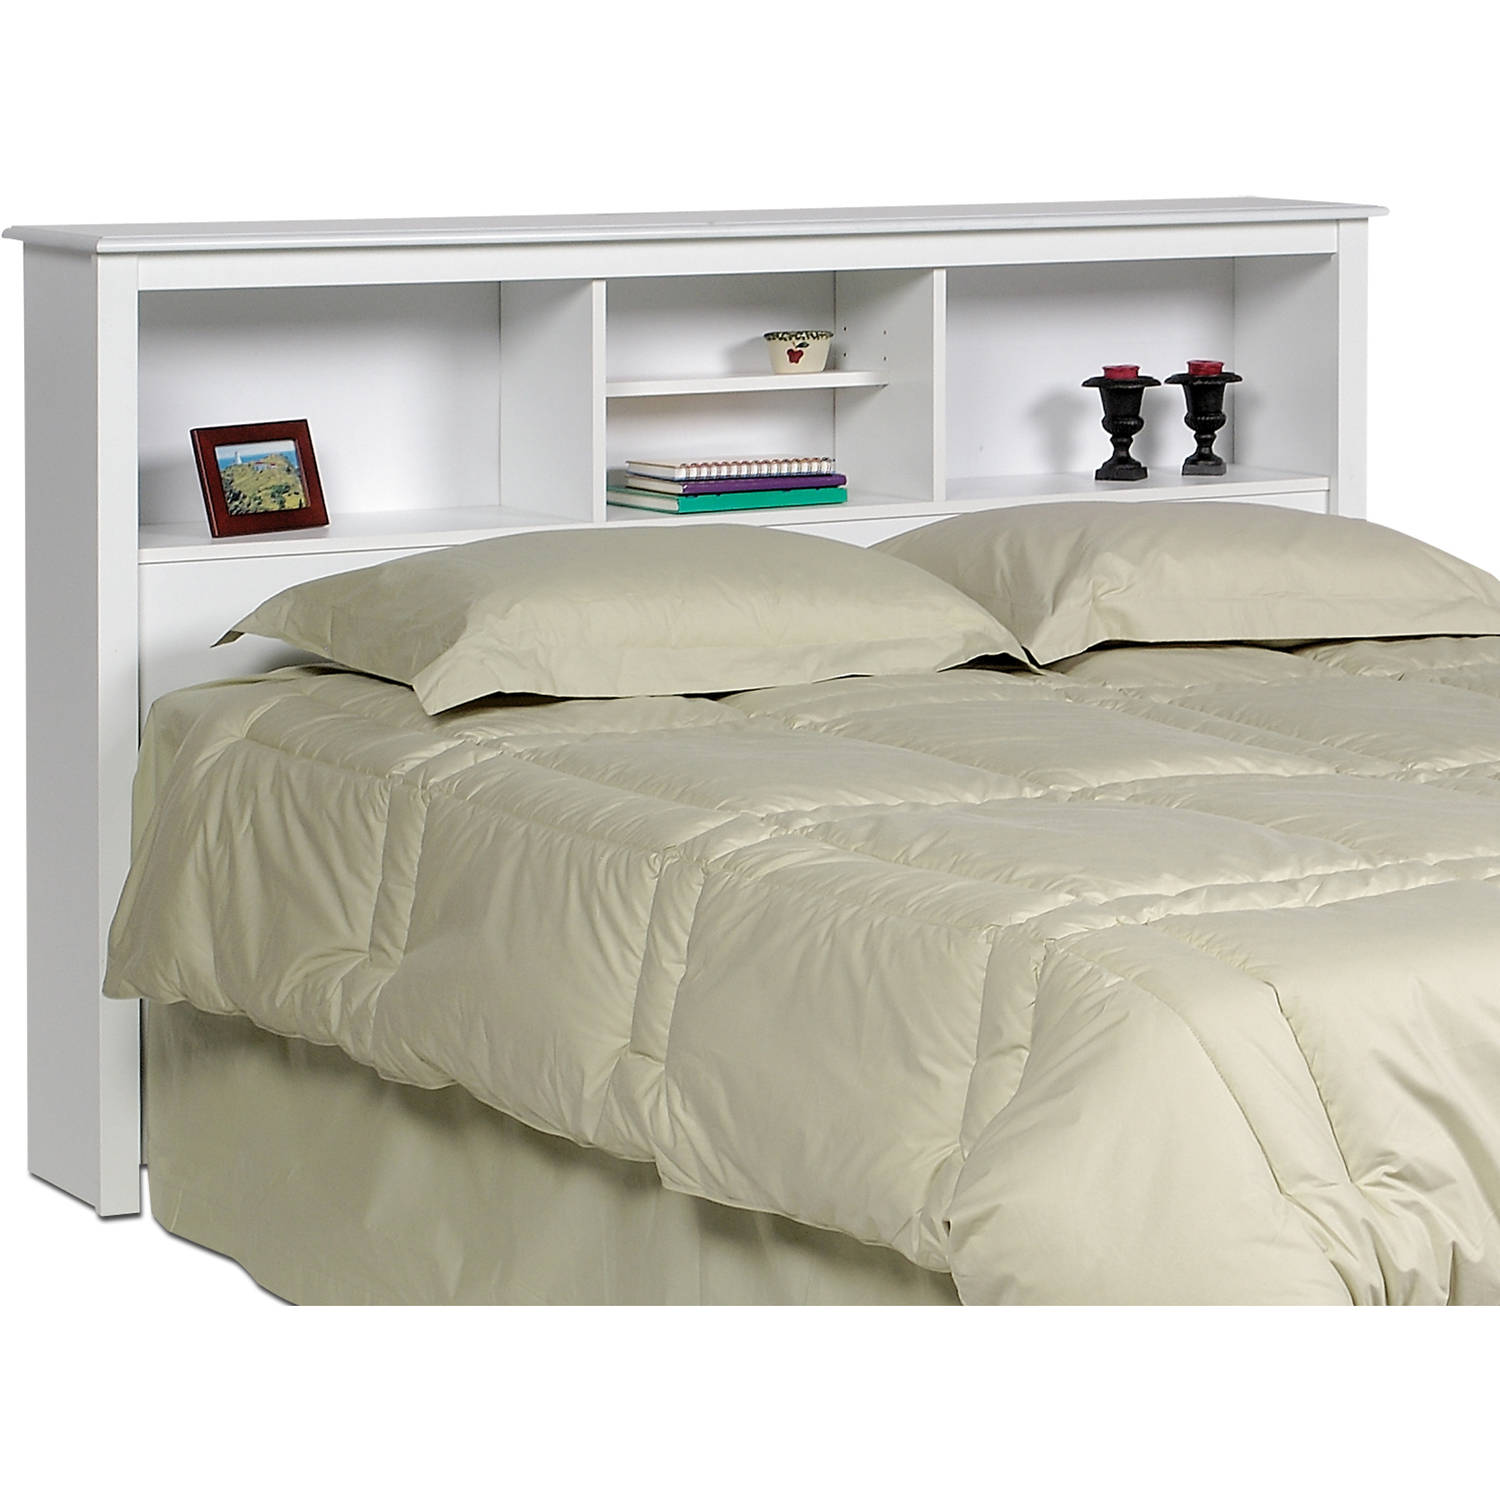 prepac full queen bookcase headboard walmart com rh walmart com headboards with shelves for king size beds Full Size Bookcase Headboards